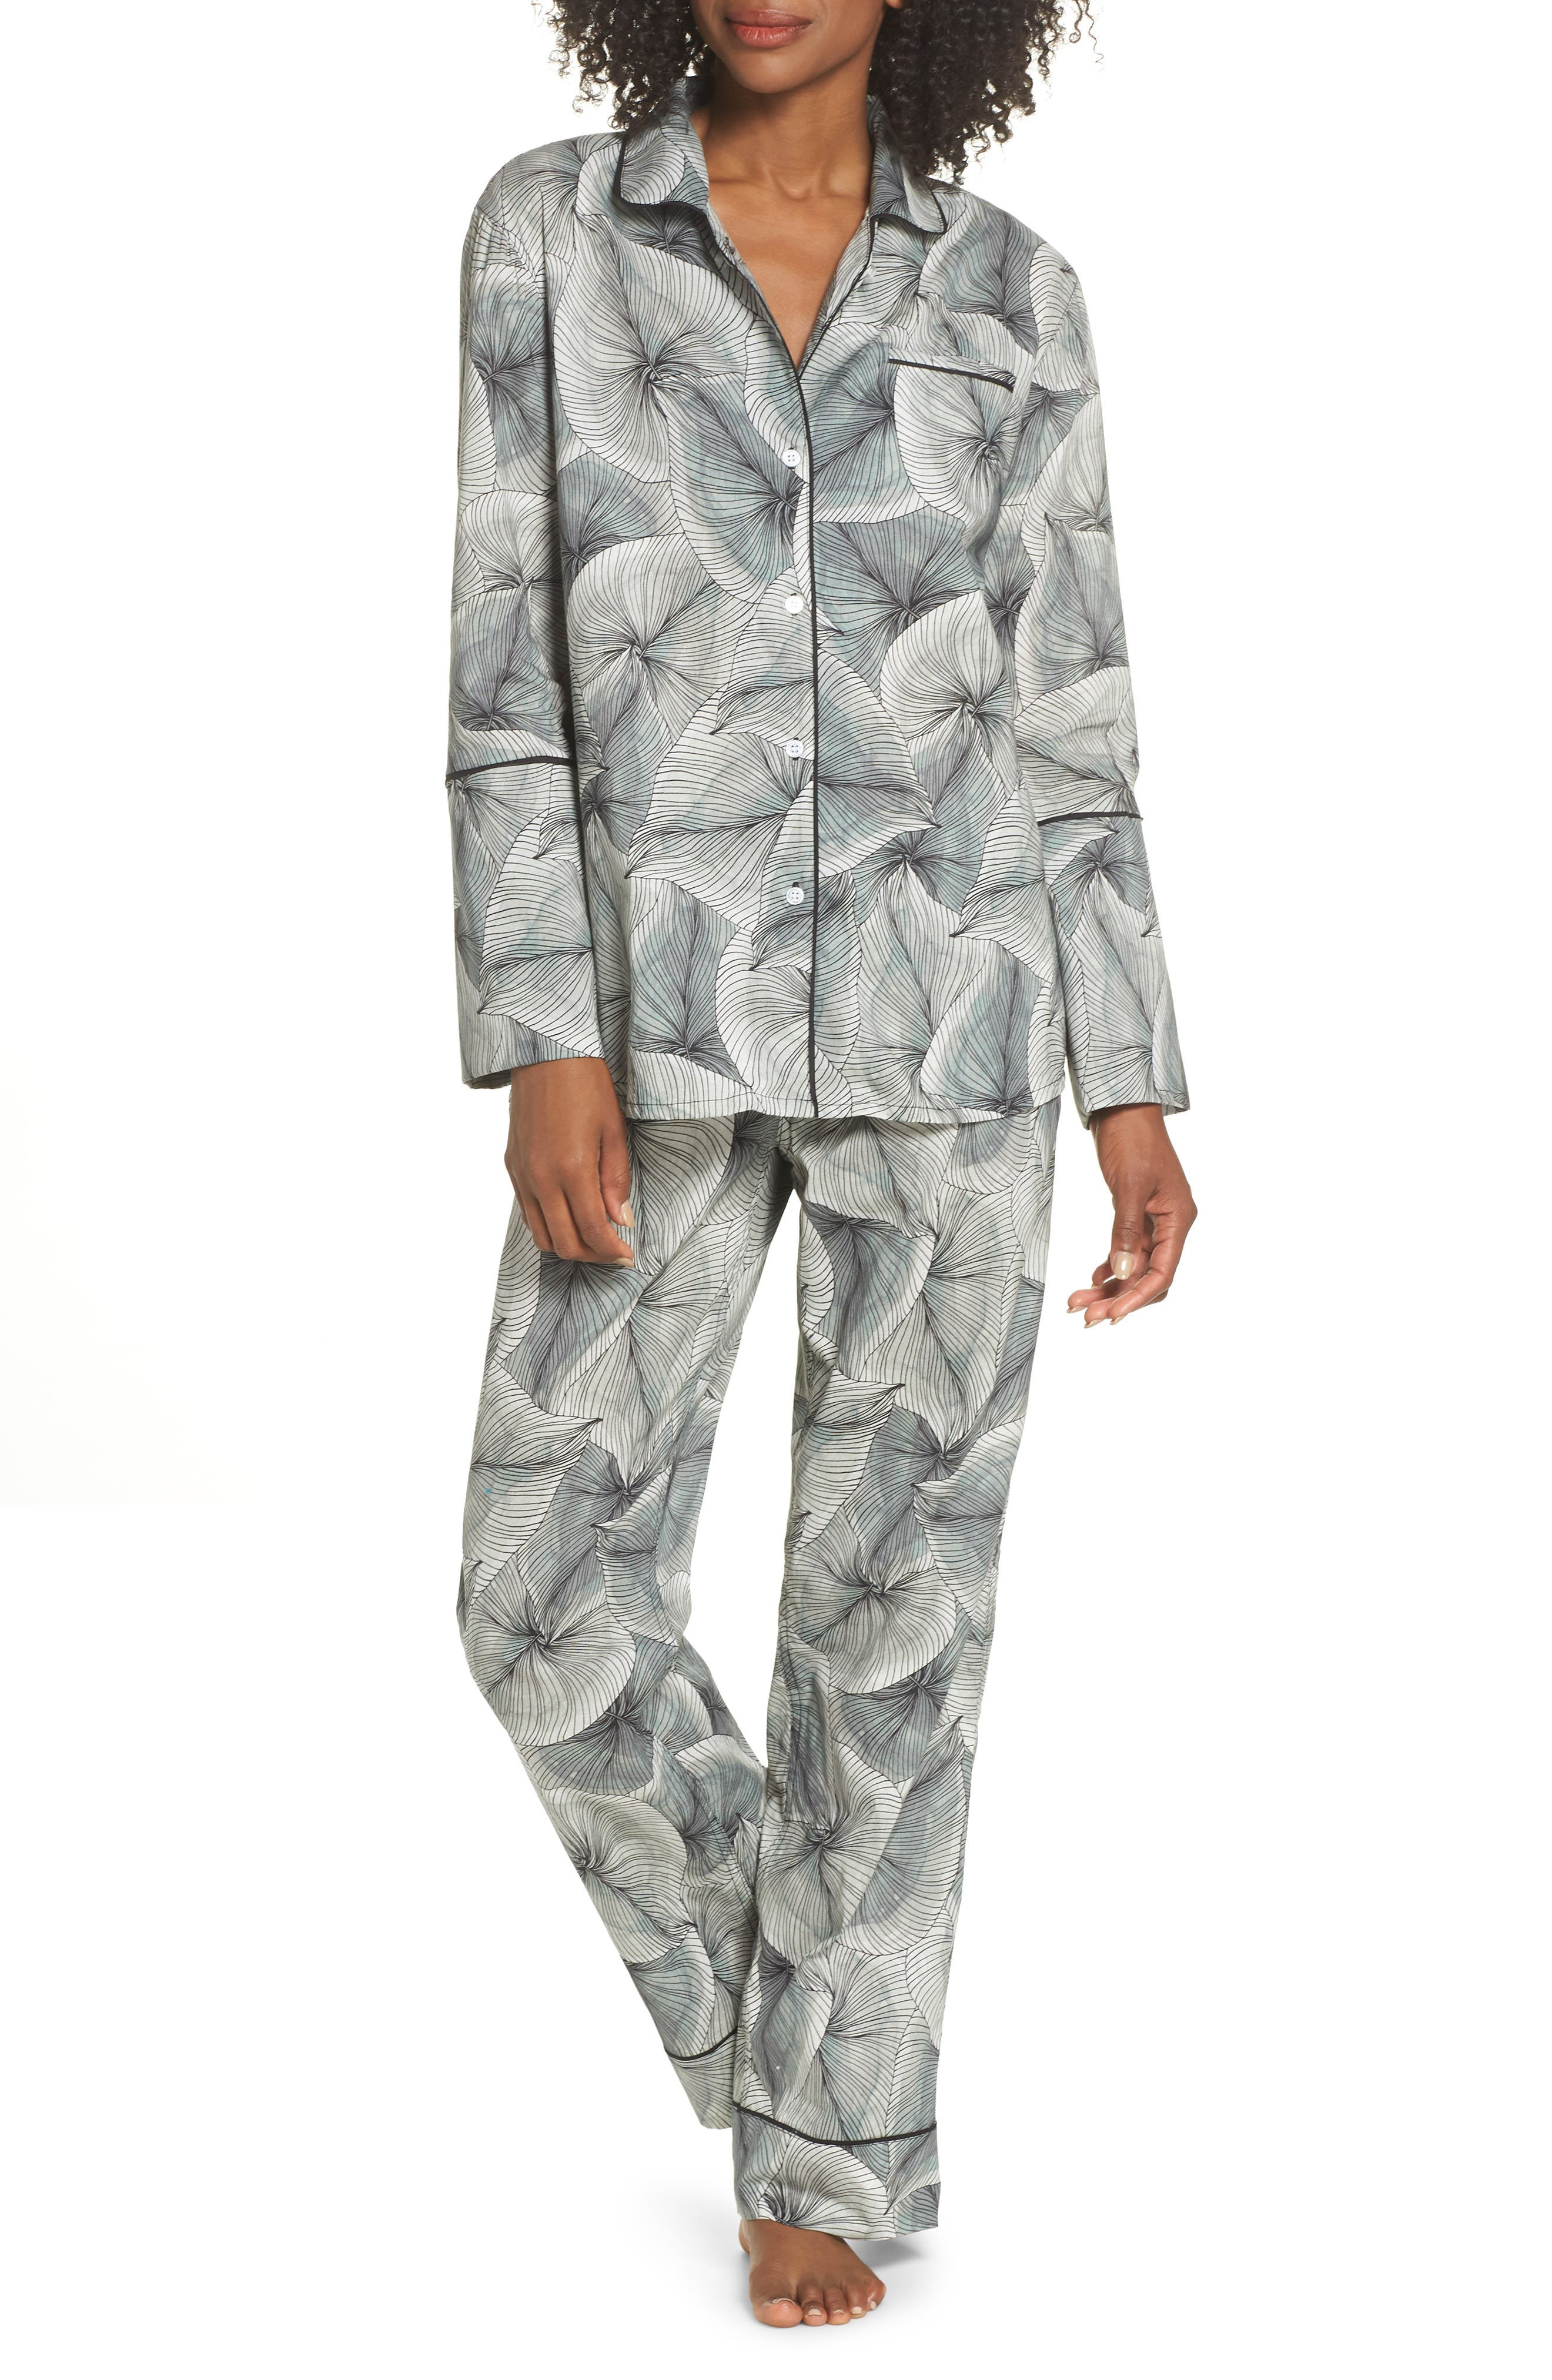 Cotton Voile Pajamas,                         Main,                         color, LEAF PRINT